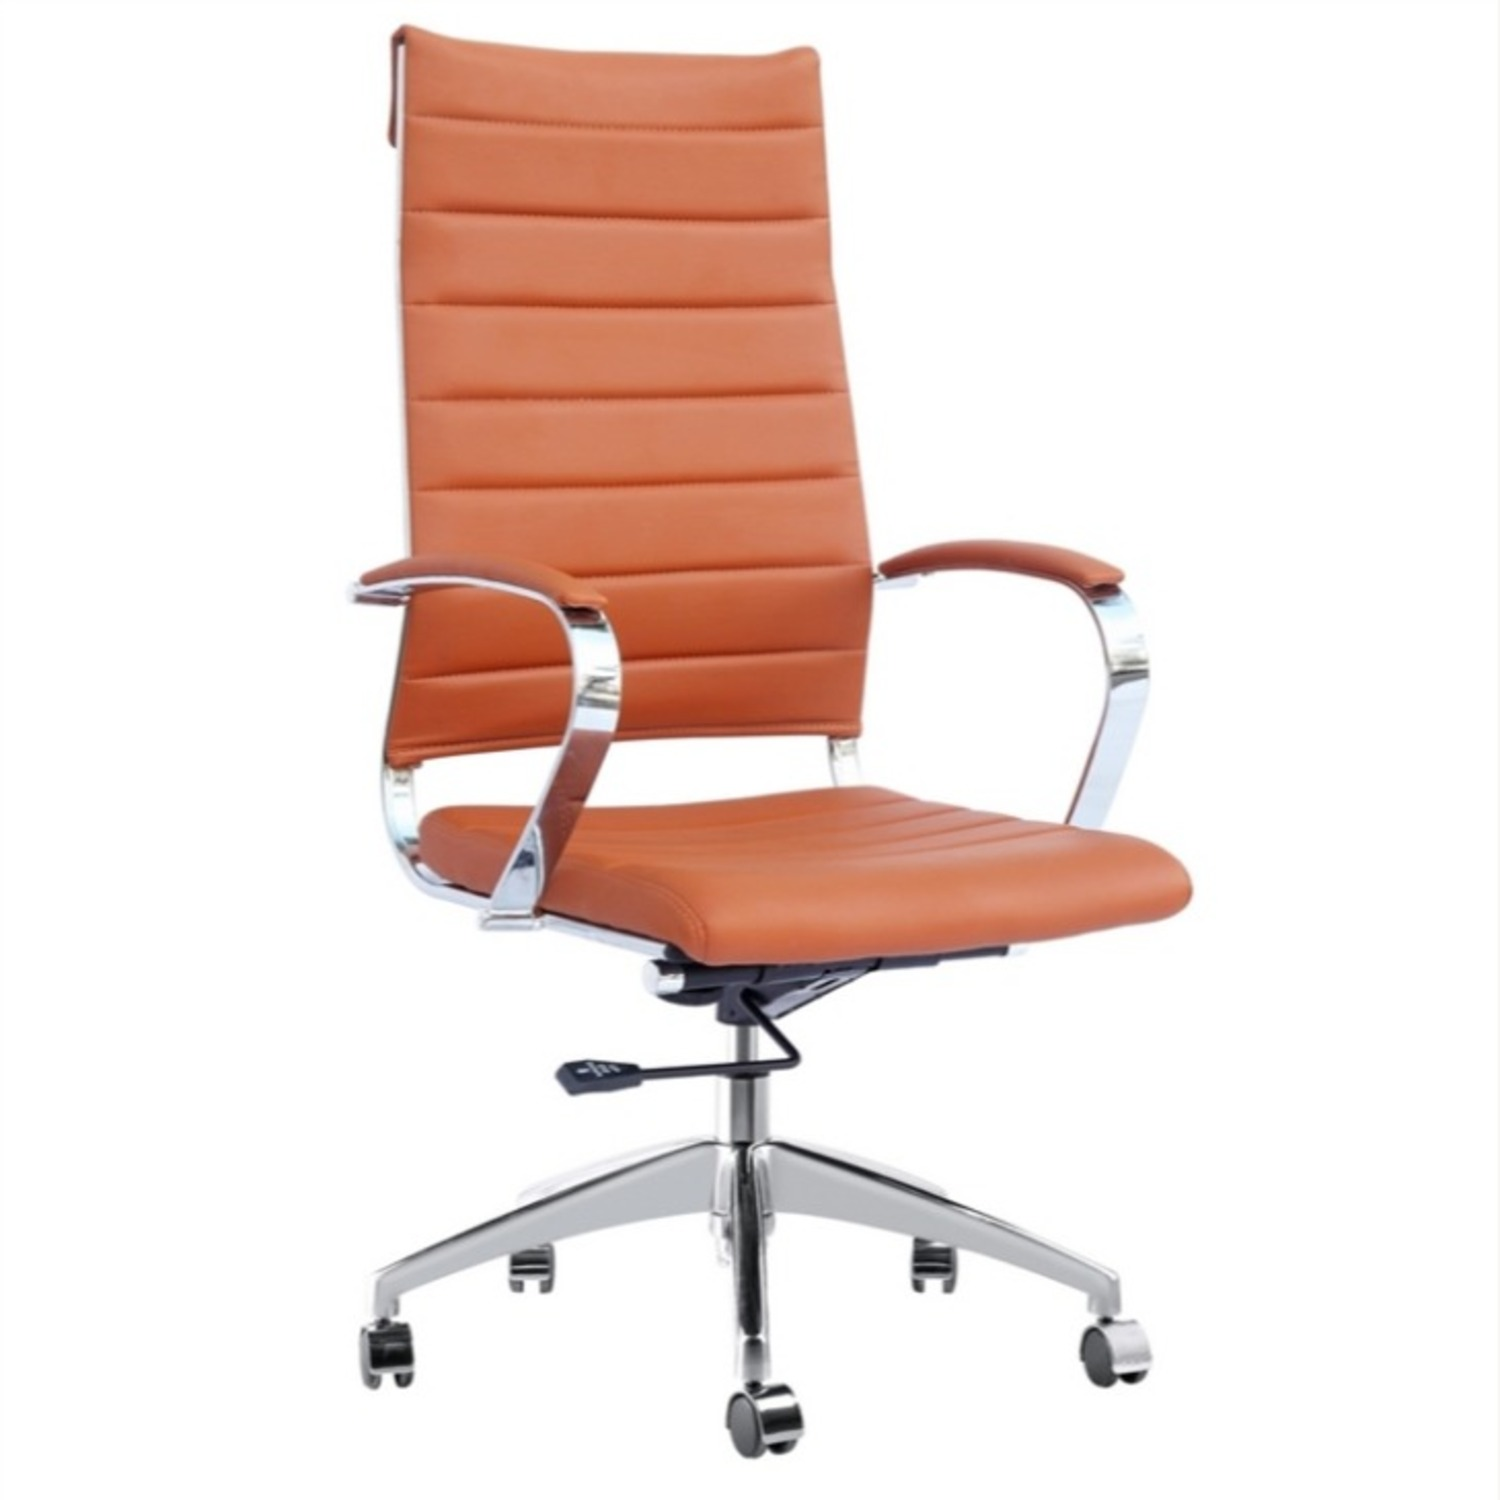 Office Chair W/ High Back Seat In Light Brown - image-1